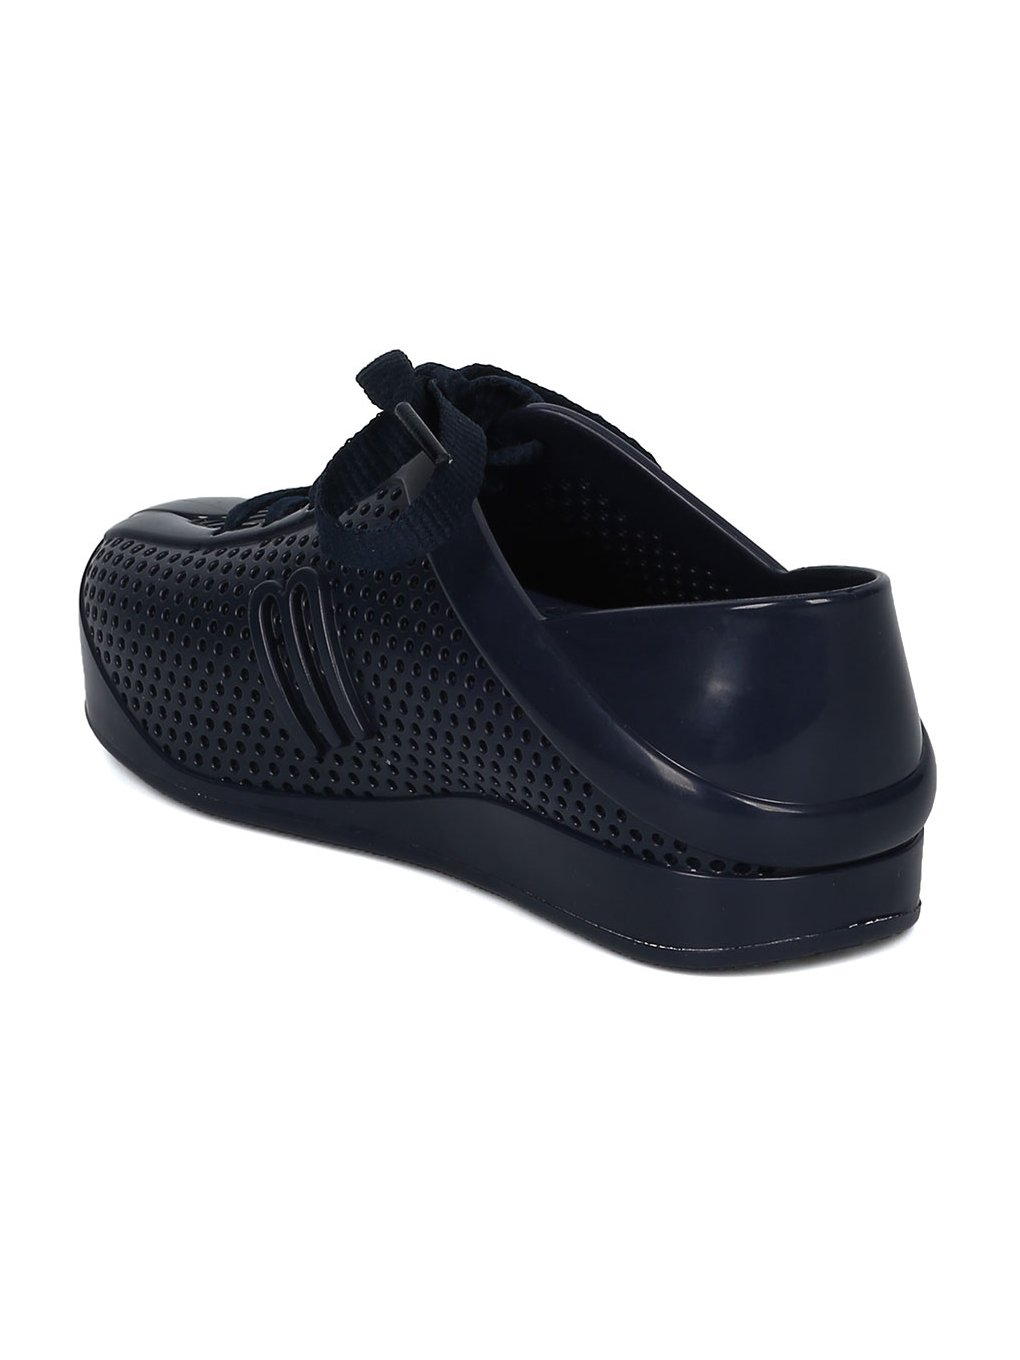 Melissa Mini Mini Love System PVC Perforated Lace up Sneaker HC08 - Navy Blue Mix (Size: Toddler 8) by Melissa (Image #3)